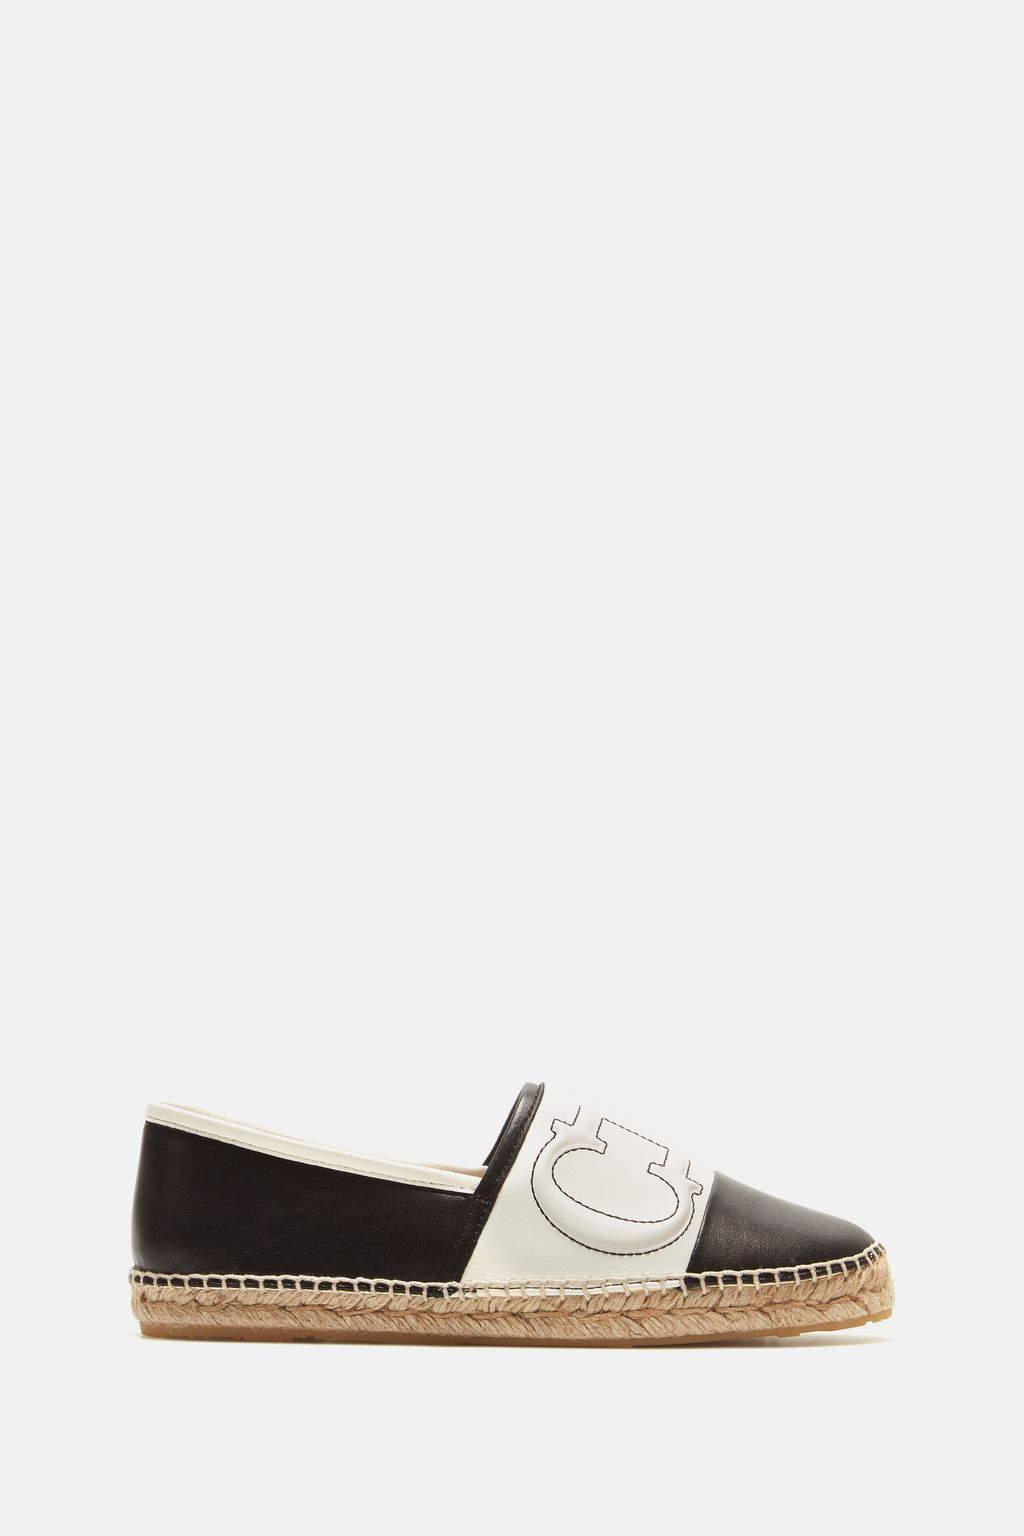 Initials Insignia leather espadrilles